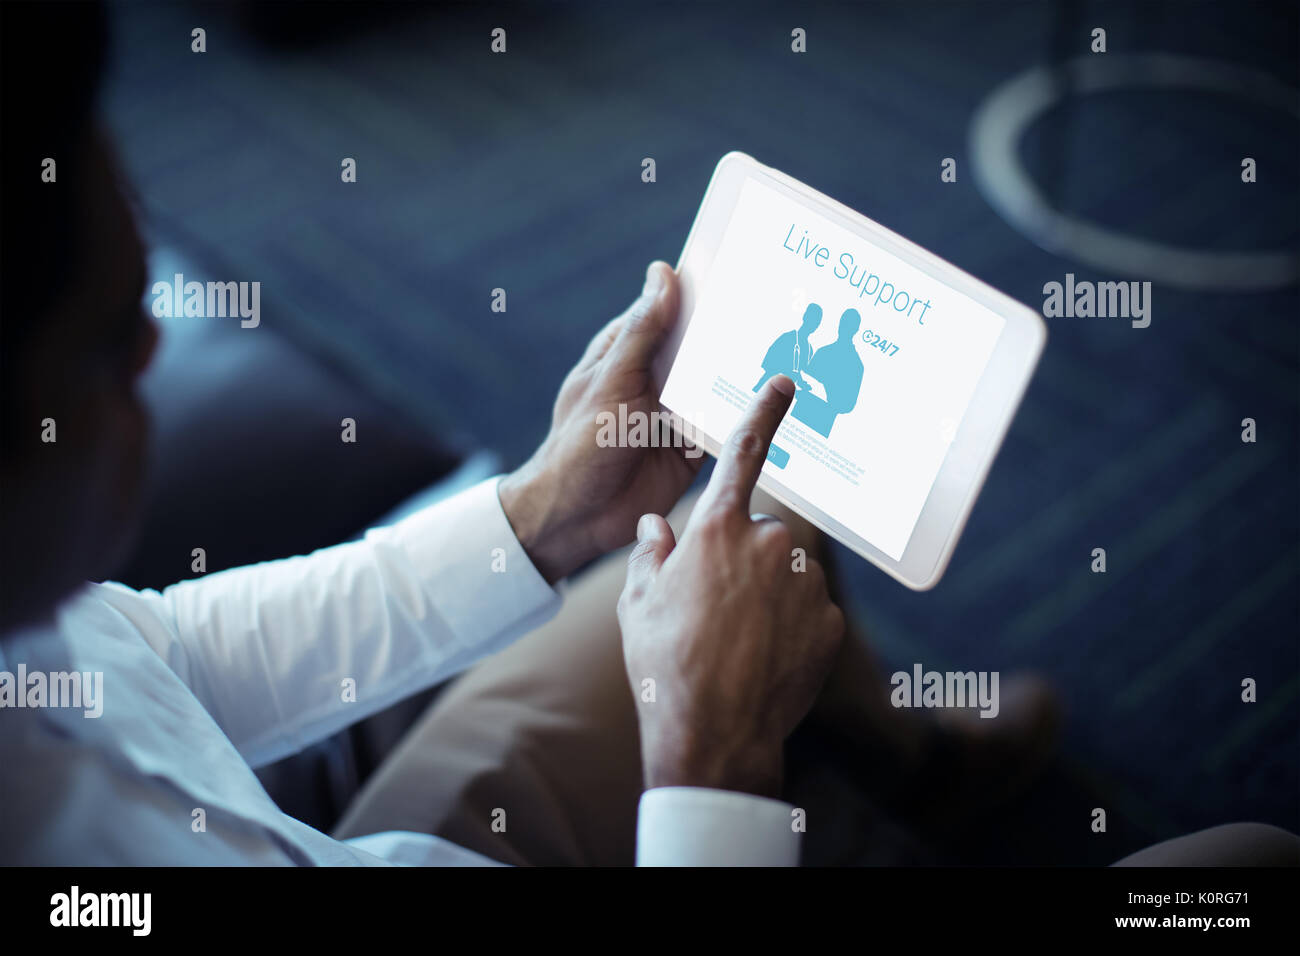 Live support text with human representations against cropped image of businessman using tablet Stock Photo